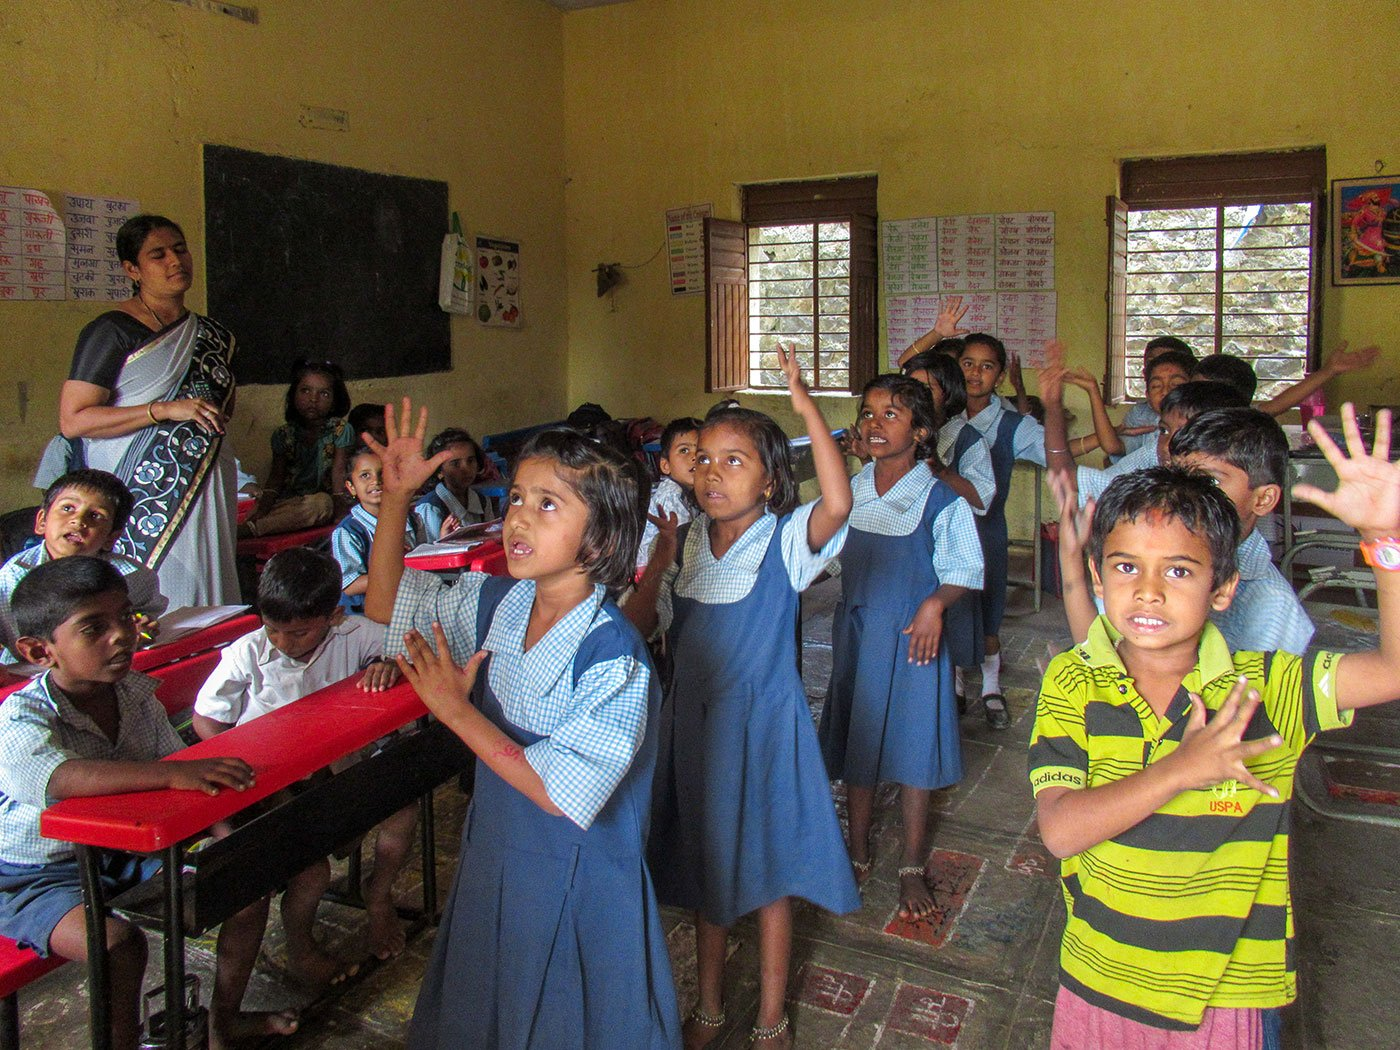 Saknewadi school where the teacher Samipata Dasfalkar turns on the TV and kids perform the song